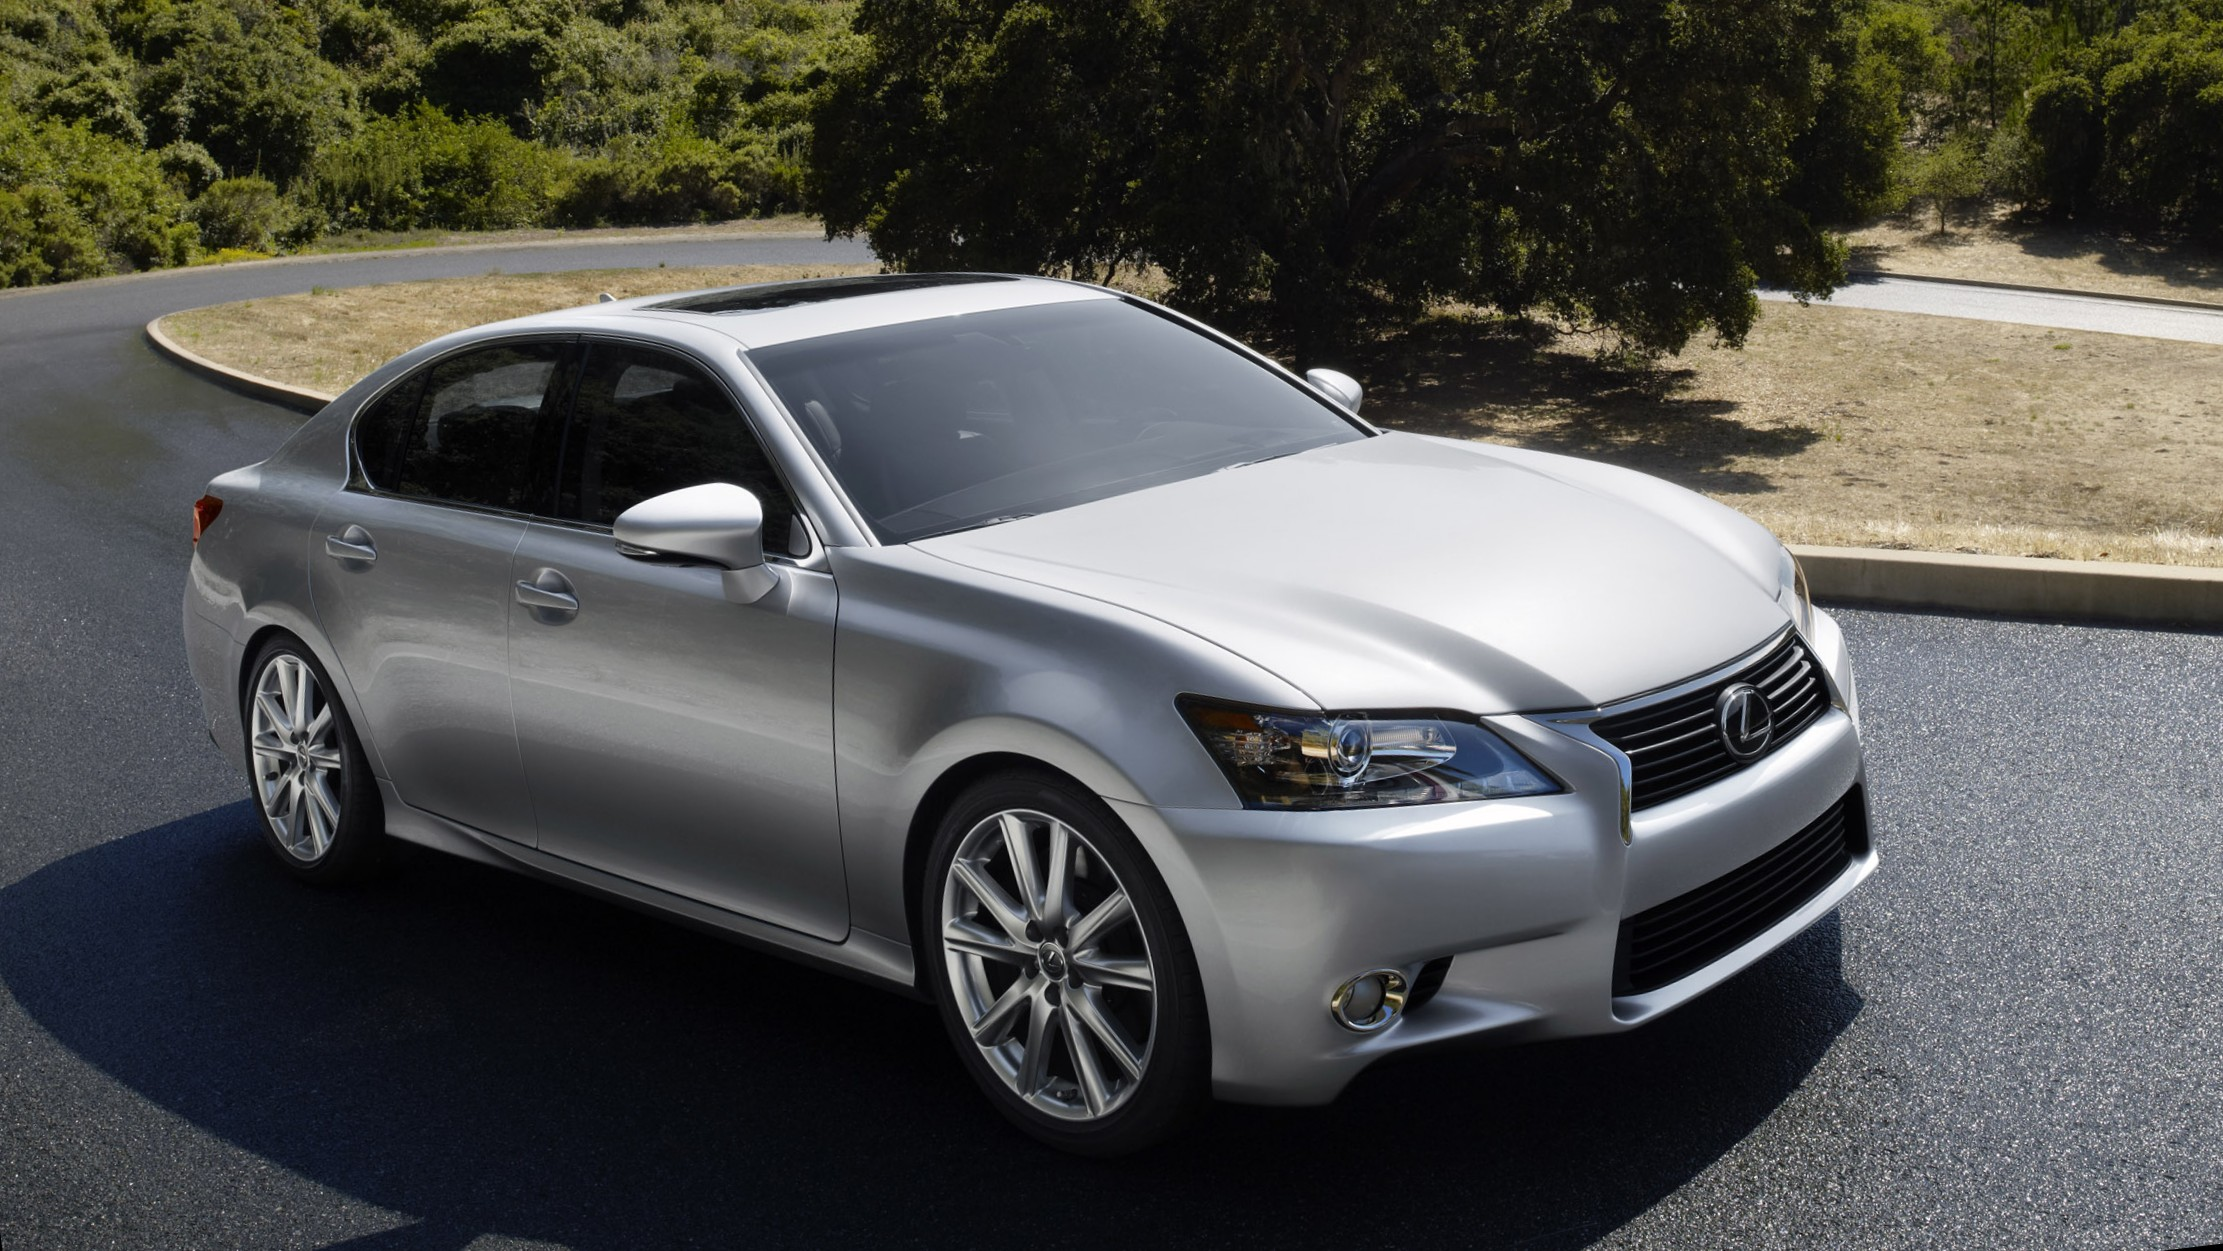 2015 Lexus Gs 350 Review Ratings Specs Prices And